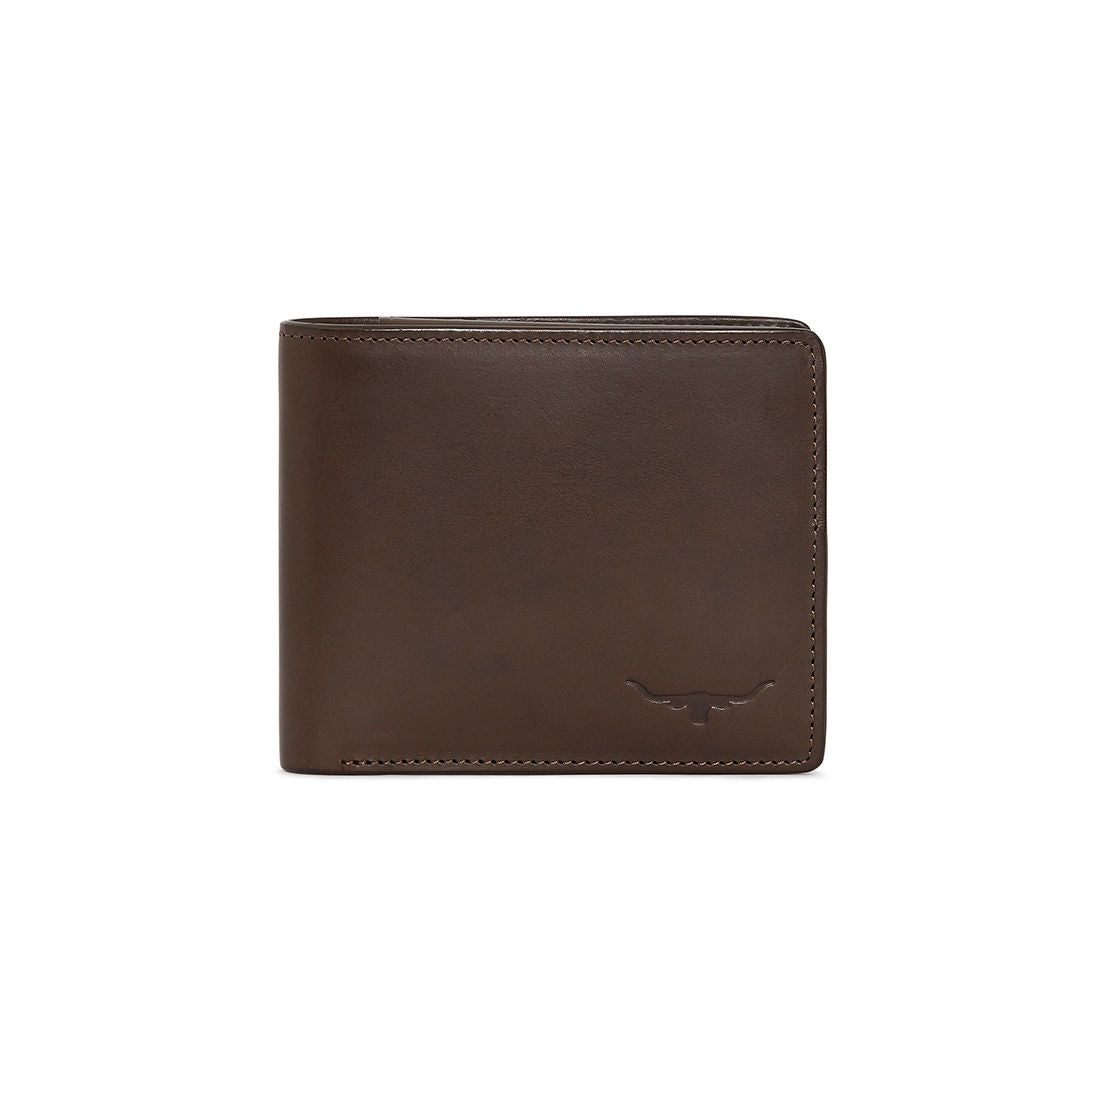 R.M.Williams City Chestnut Wallet with Coin Pocket CLM9ACH410100